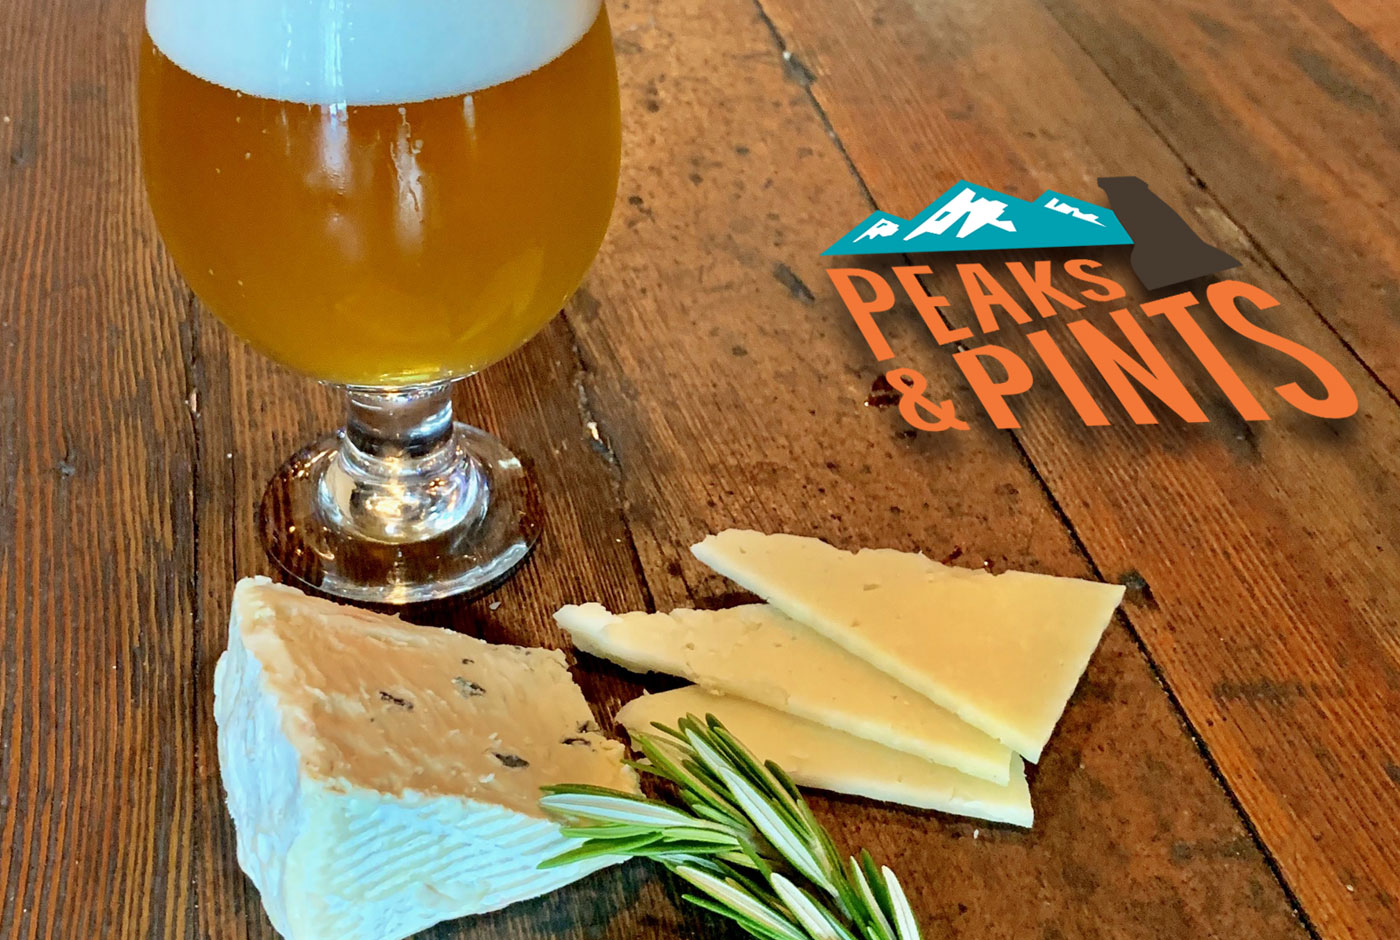 Peaks-and-Pints-de-Belgian-Beerloo-Cheese-Pairing-calendar